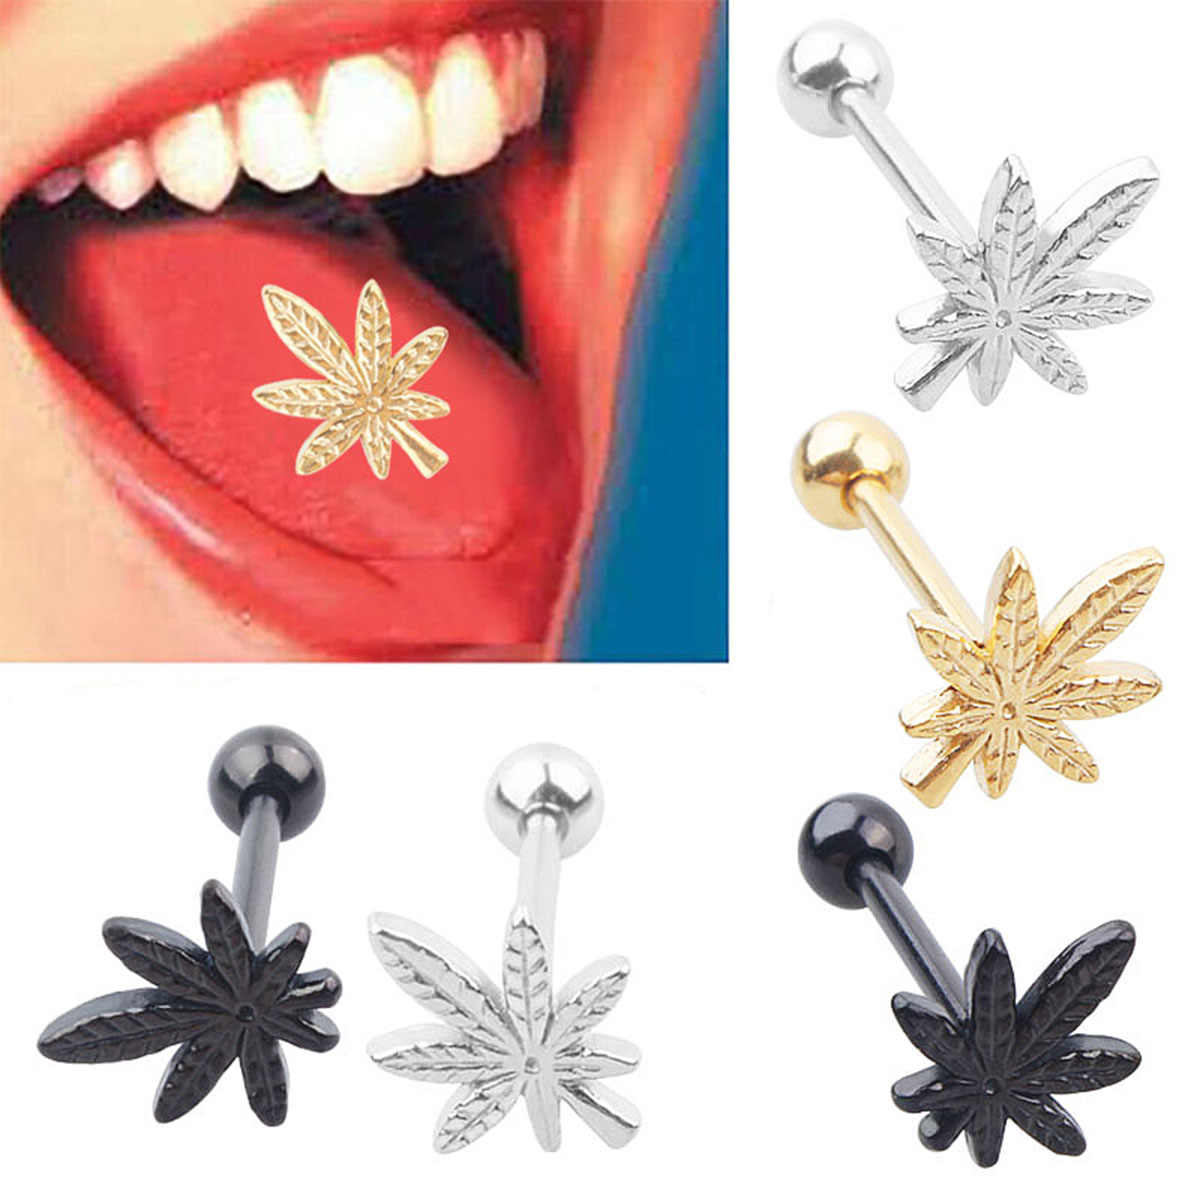 Trendy Surgical Steel Lip Piercing Ring Stud Shellhard Piercing